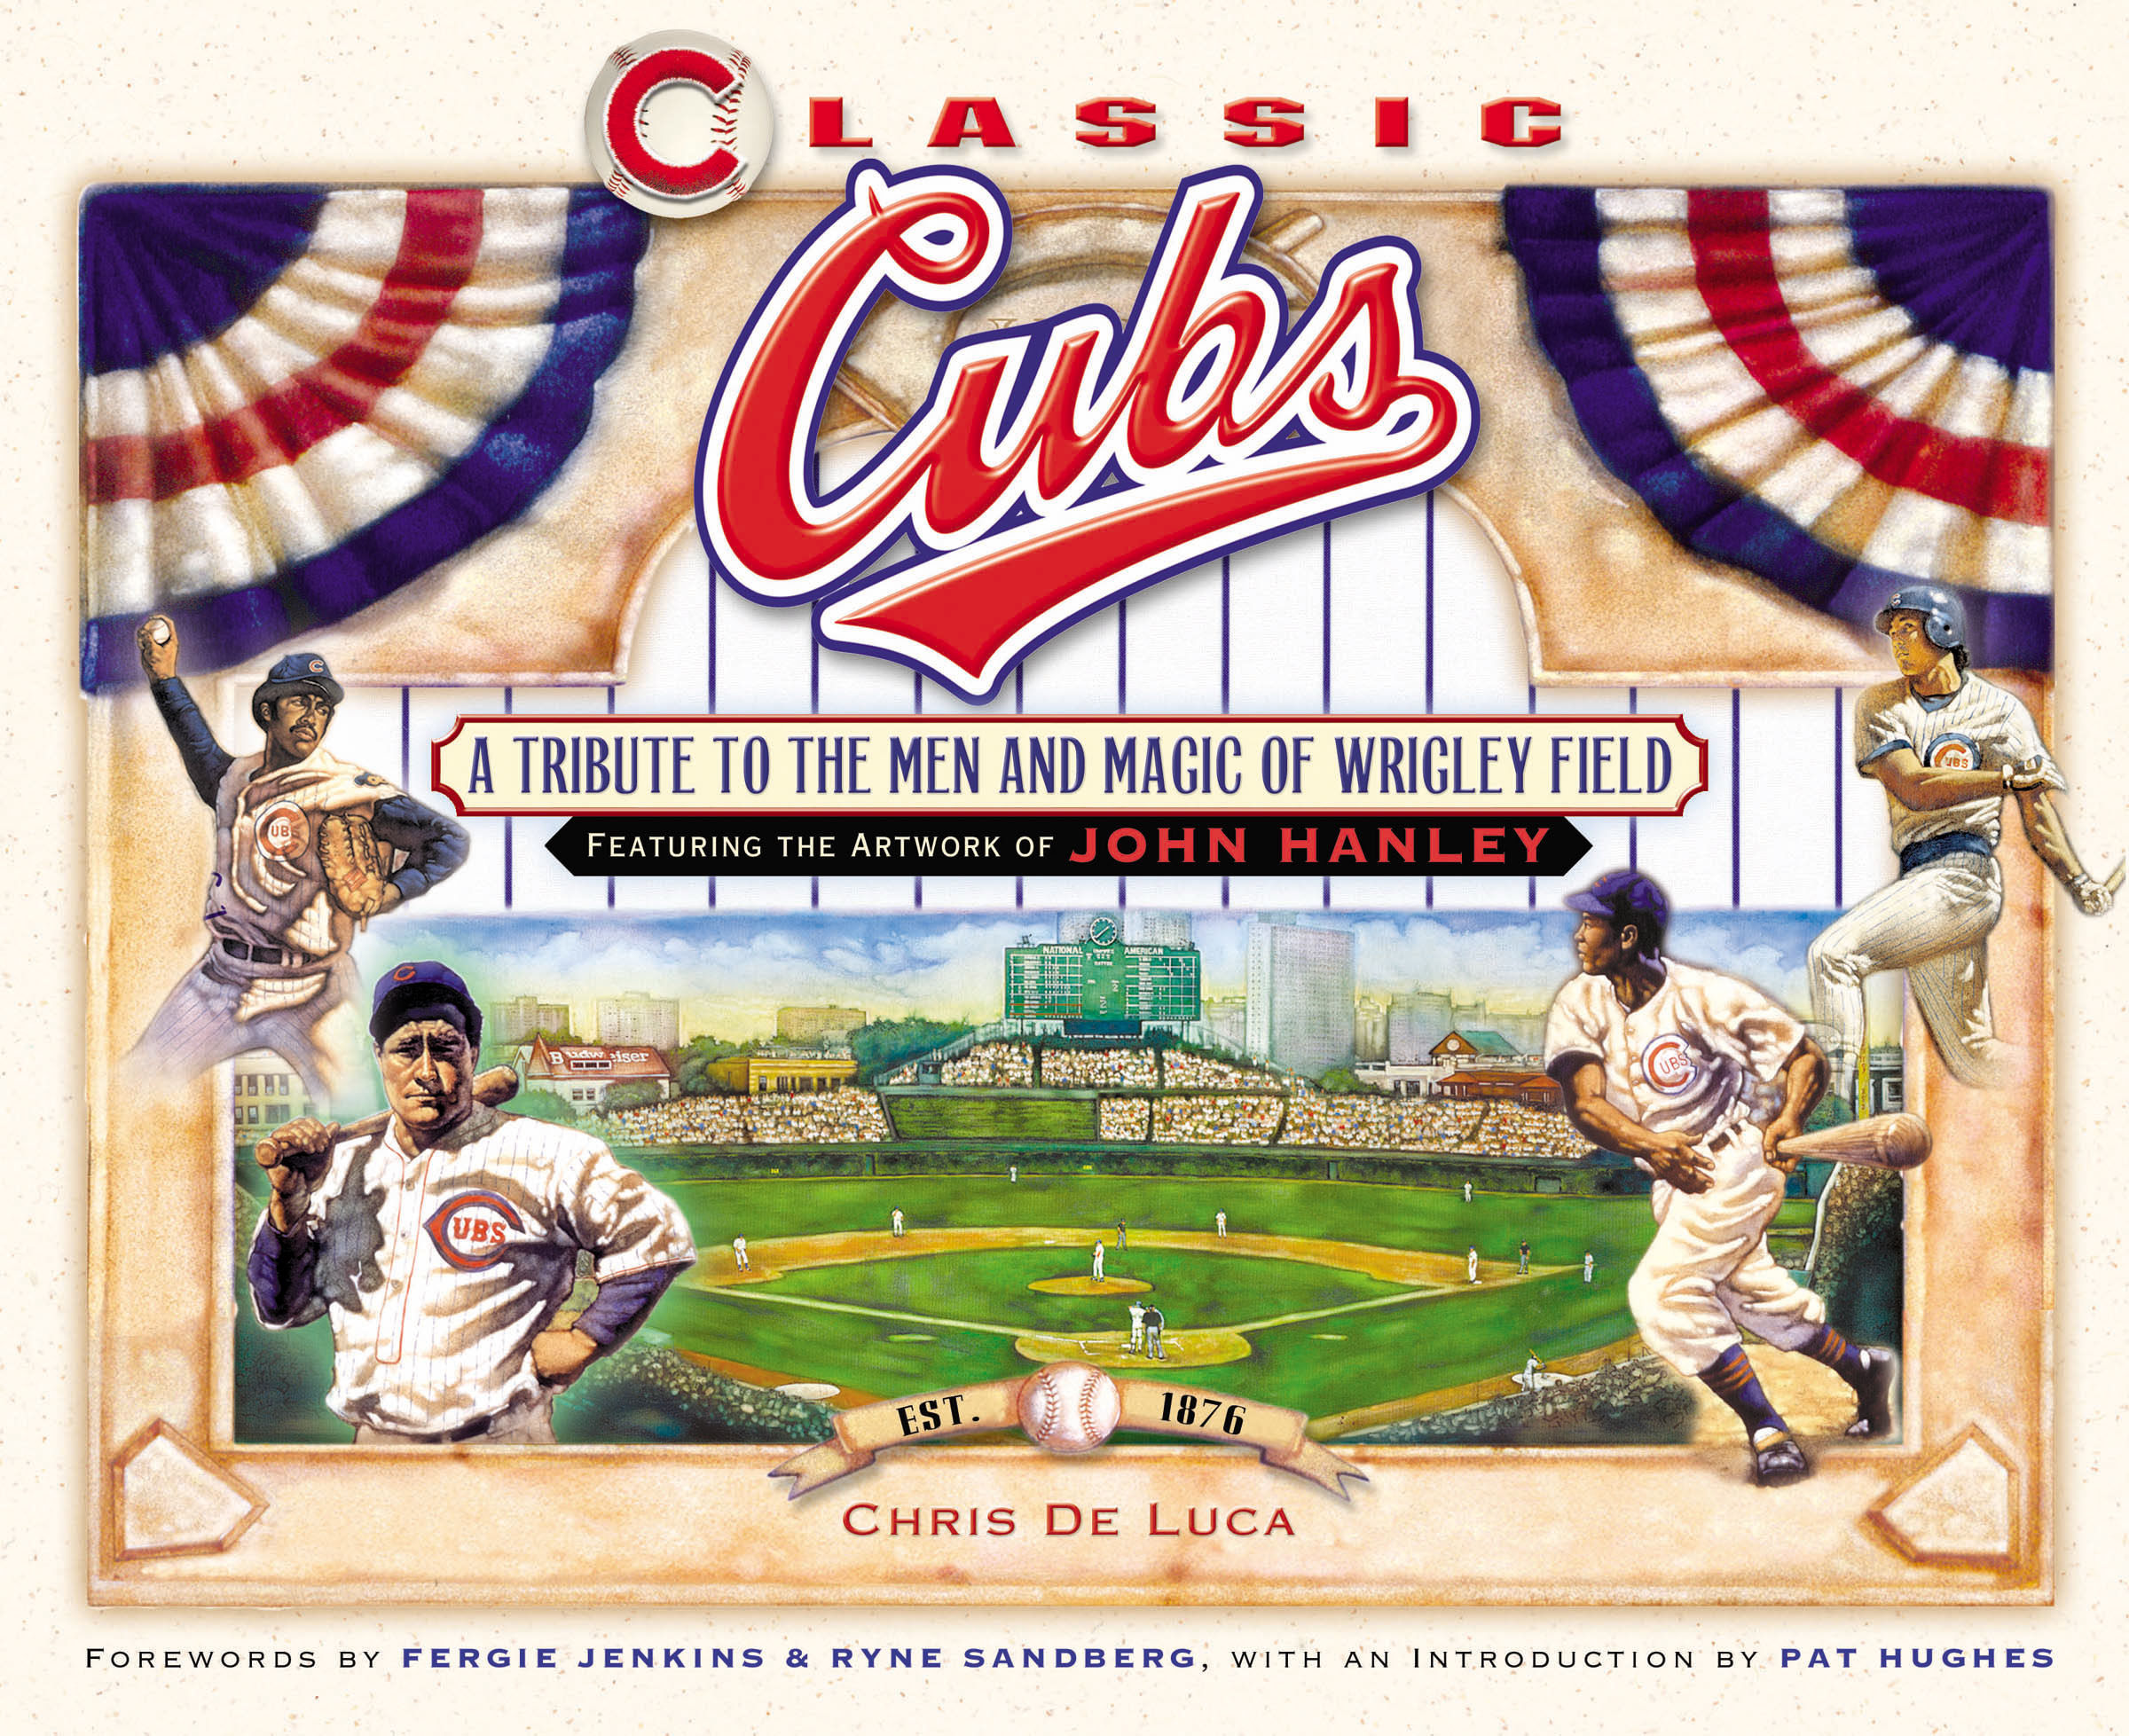 Chicago Cubs Classic Cubsjpg 2400x1957